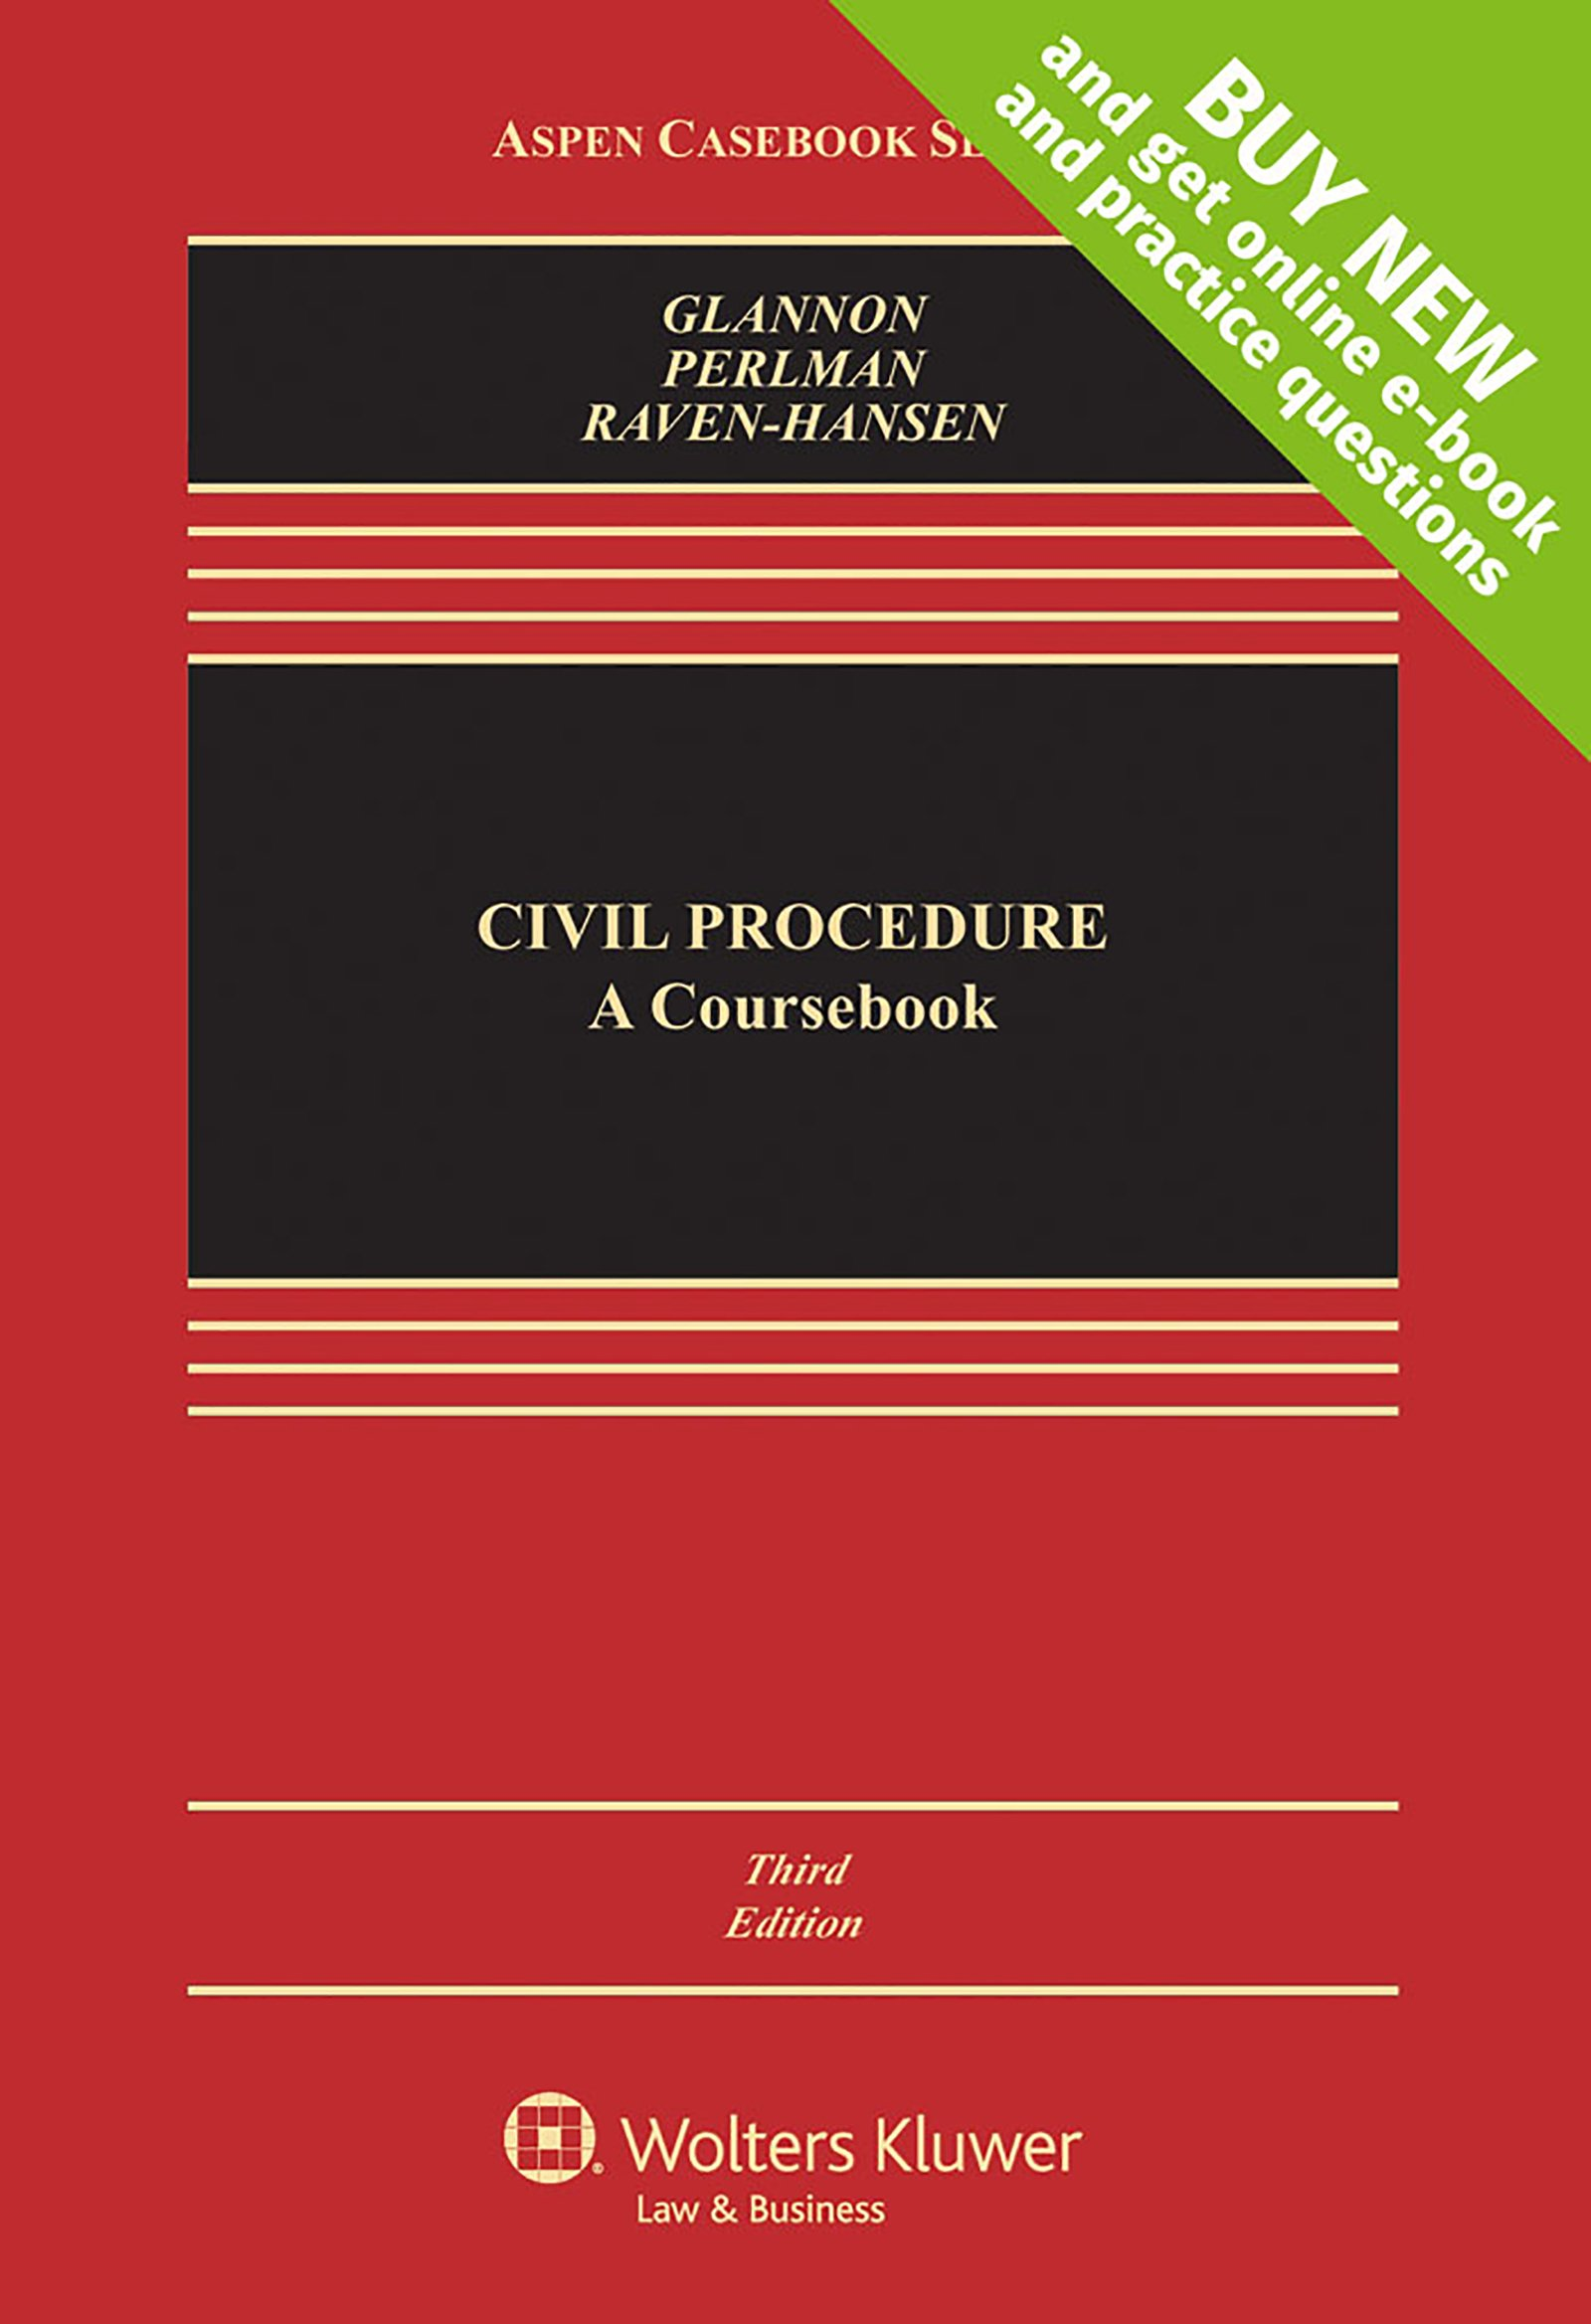 Civil Procedure: A Coursebook [Connected Casebook] (Aspen Casebook) by Wolters Kluwer